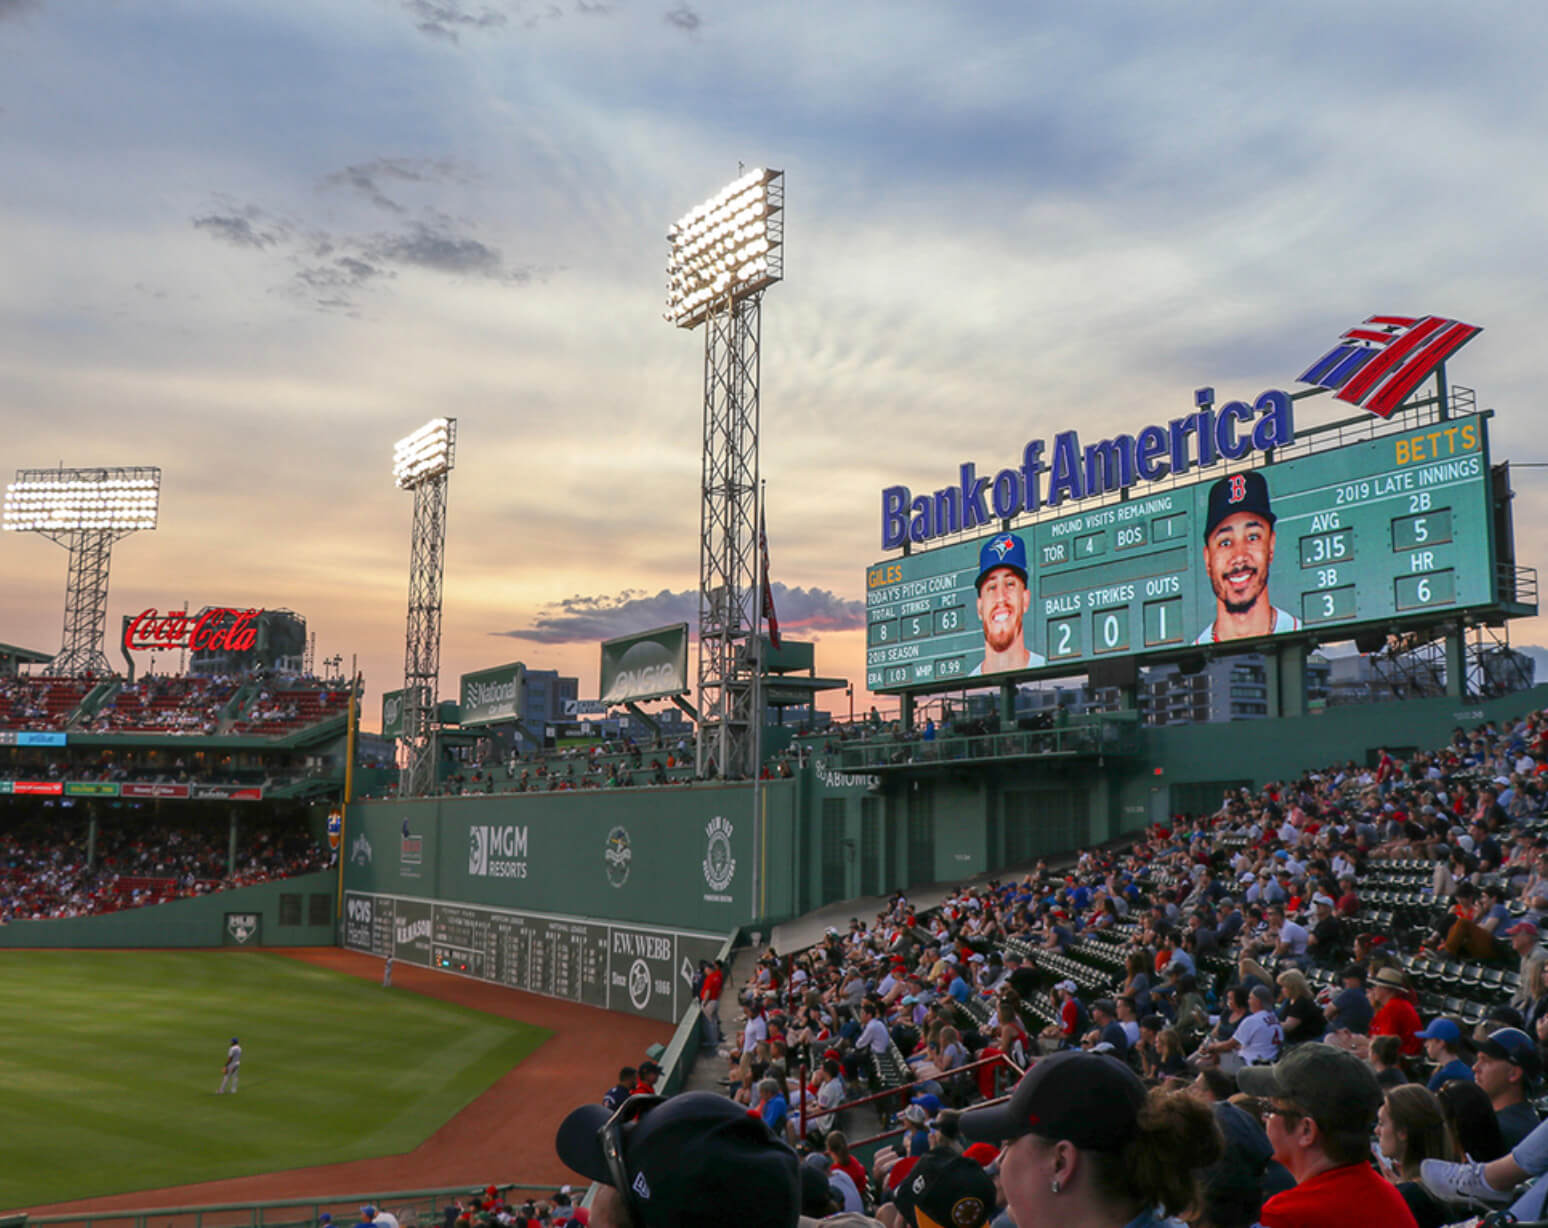 Where do the Boston Red Sox play baseball?